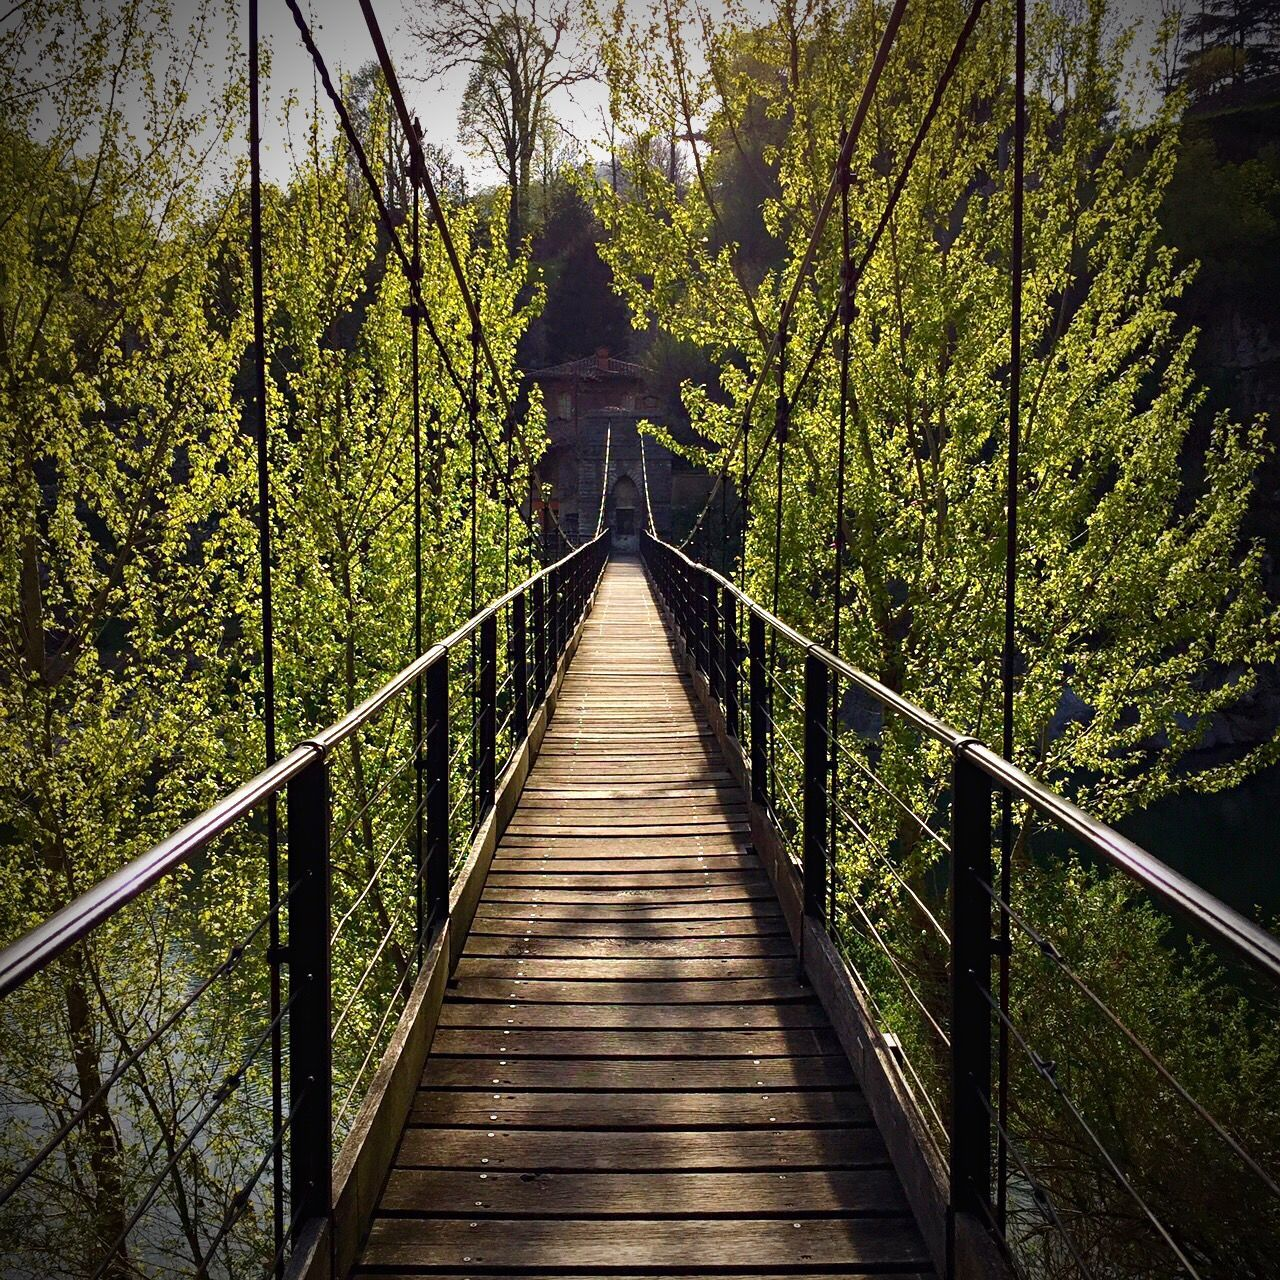 bridge - man made structure, the way forward, railing, tree, forest, built structure, connection, footbridge, nature, outdoors, architecture, day, growth, tranquil scene, tranquility, beauty in nature, wood paneling, suspension bridge, no people, sky